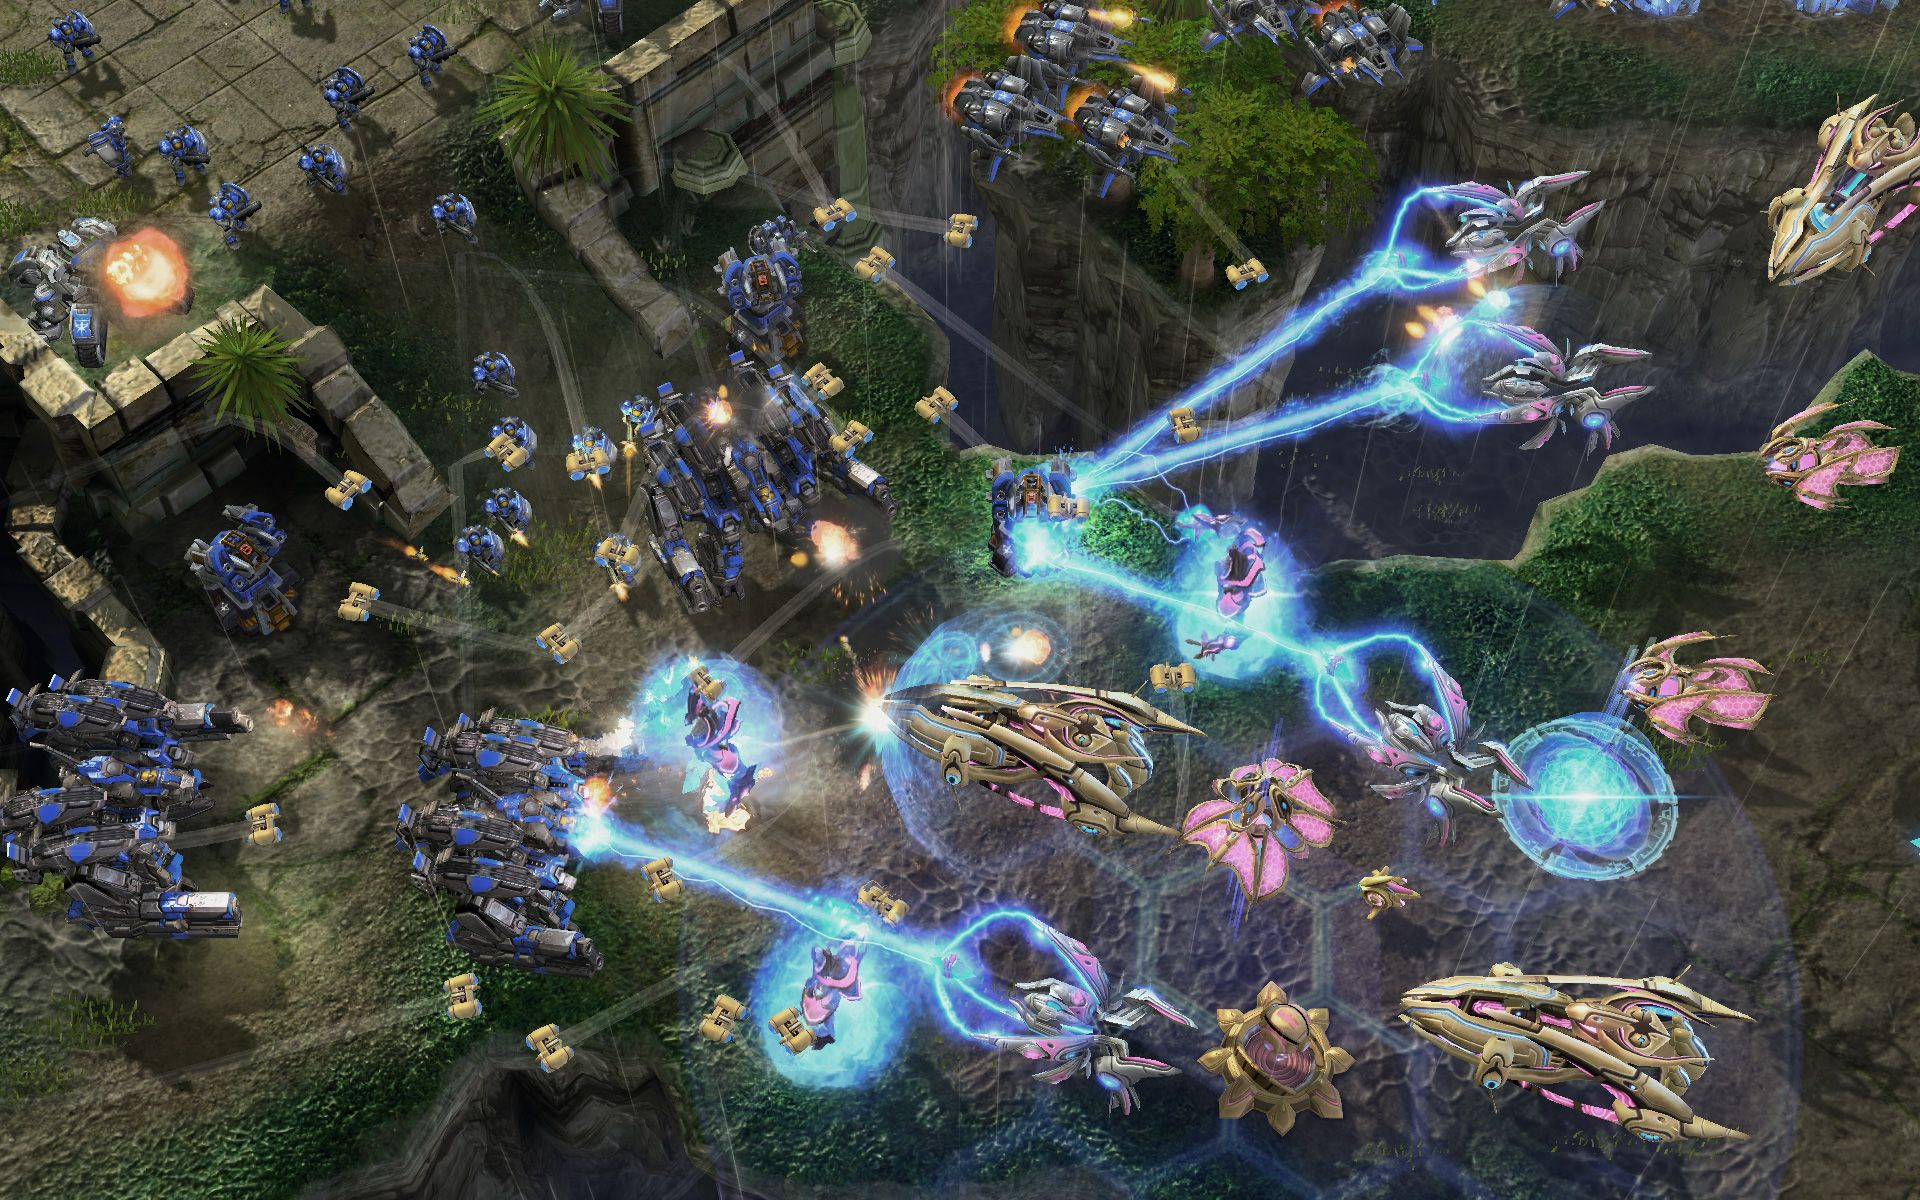 Video Trailer Starcraft 2 Battle Report 3 Extended Gameplay Trailer HD MegaGames